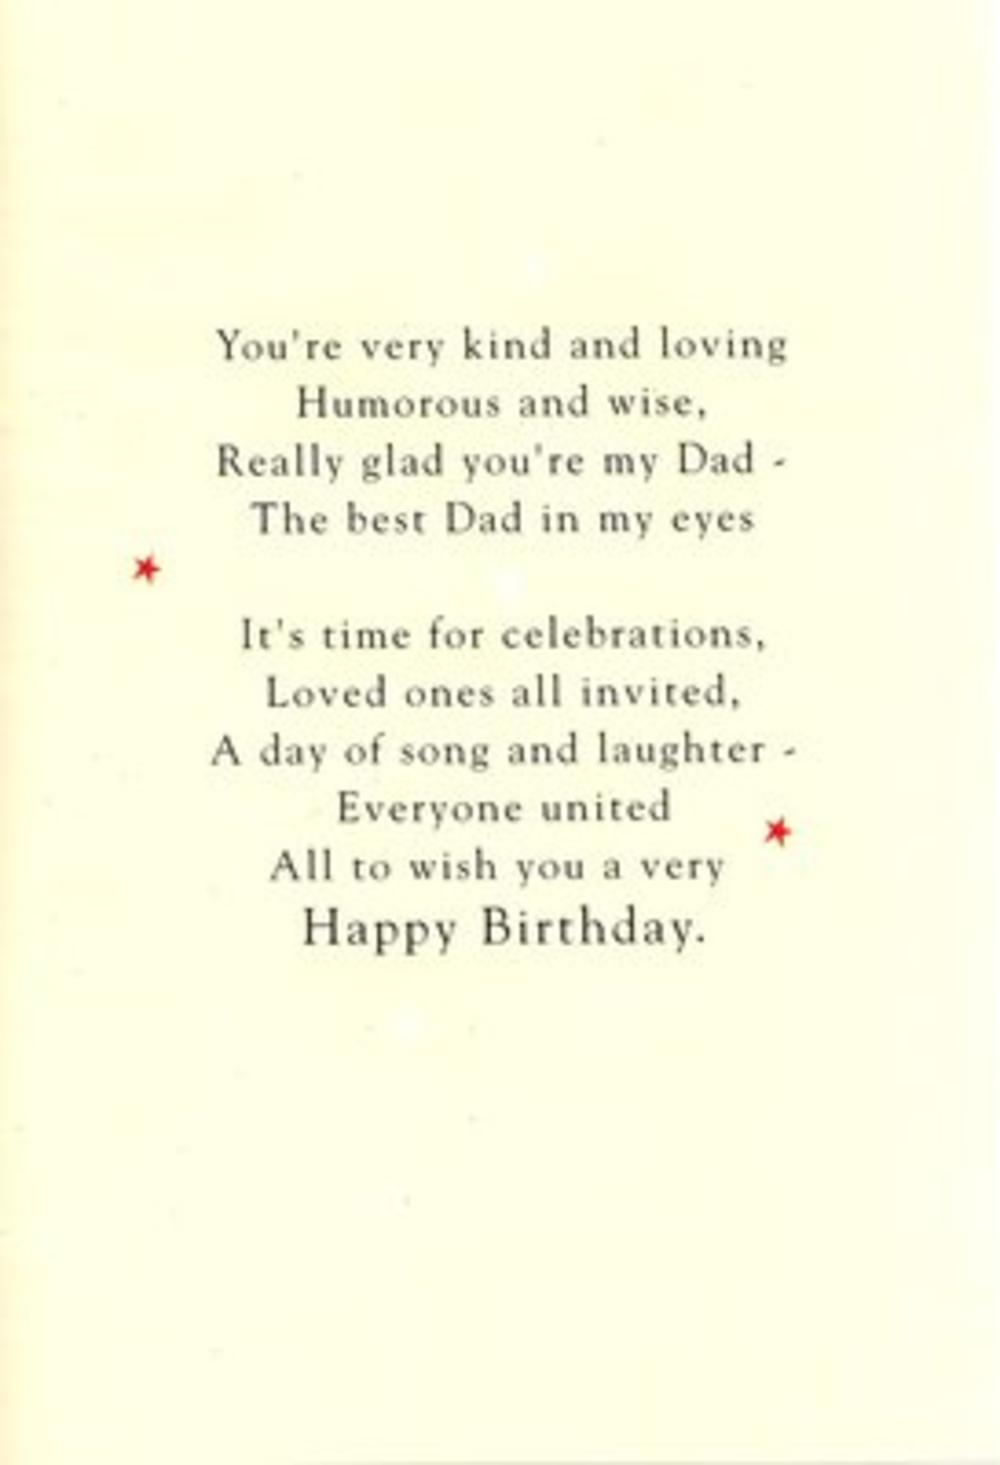 Dad Birthday Poetry In Motion Card Cards Love Kates